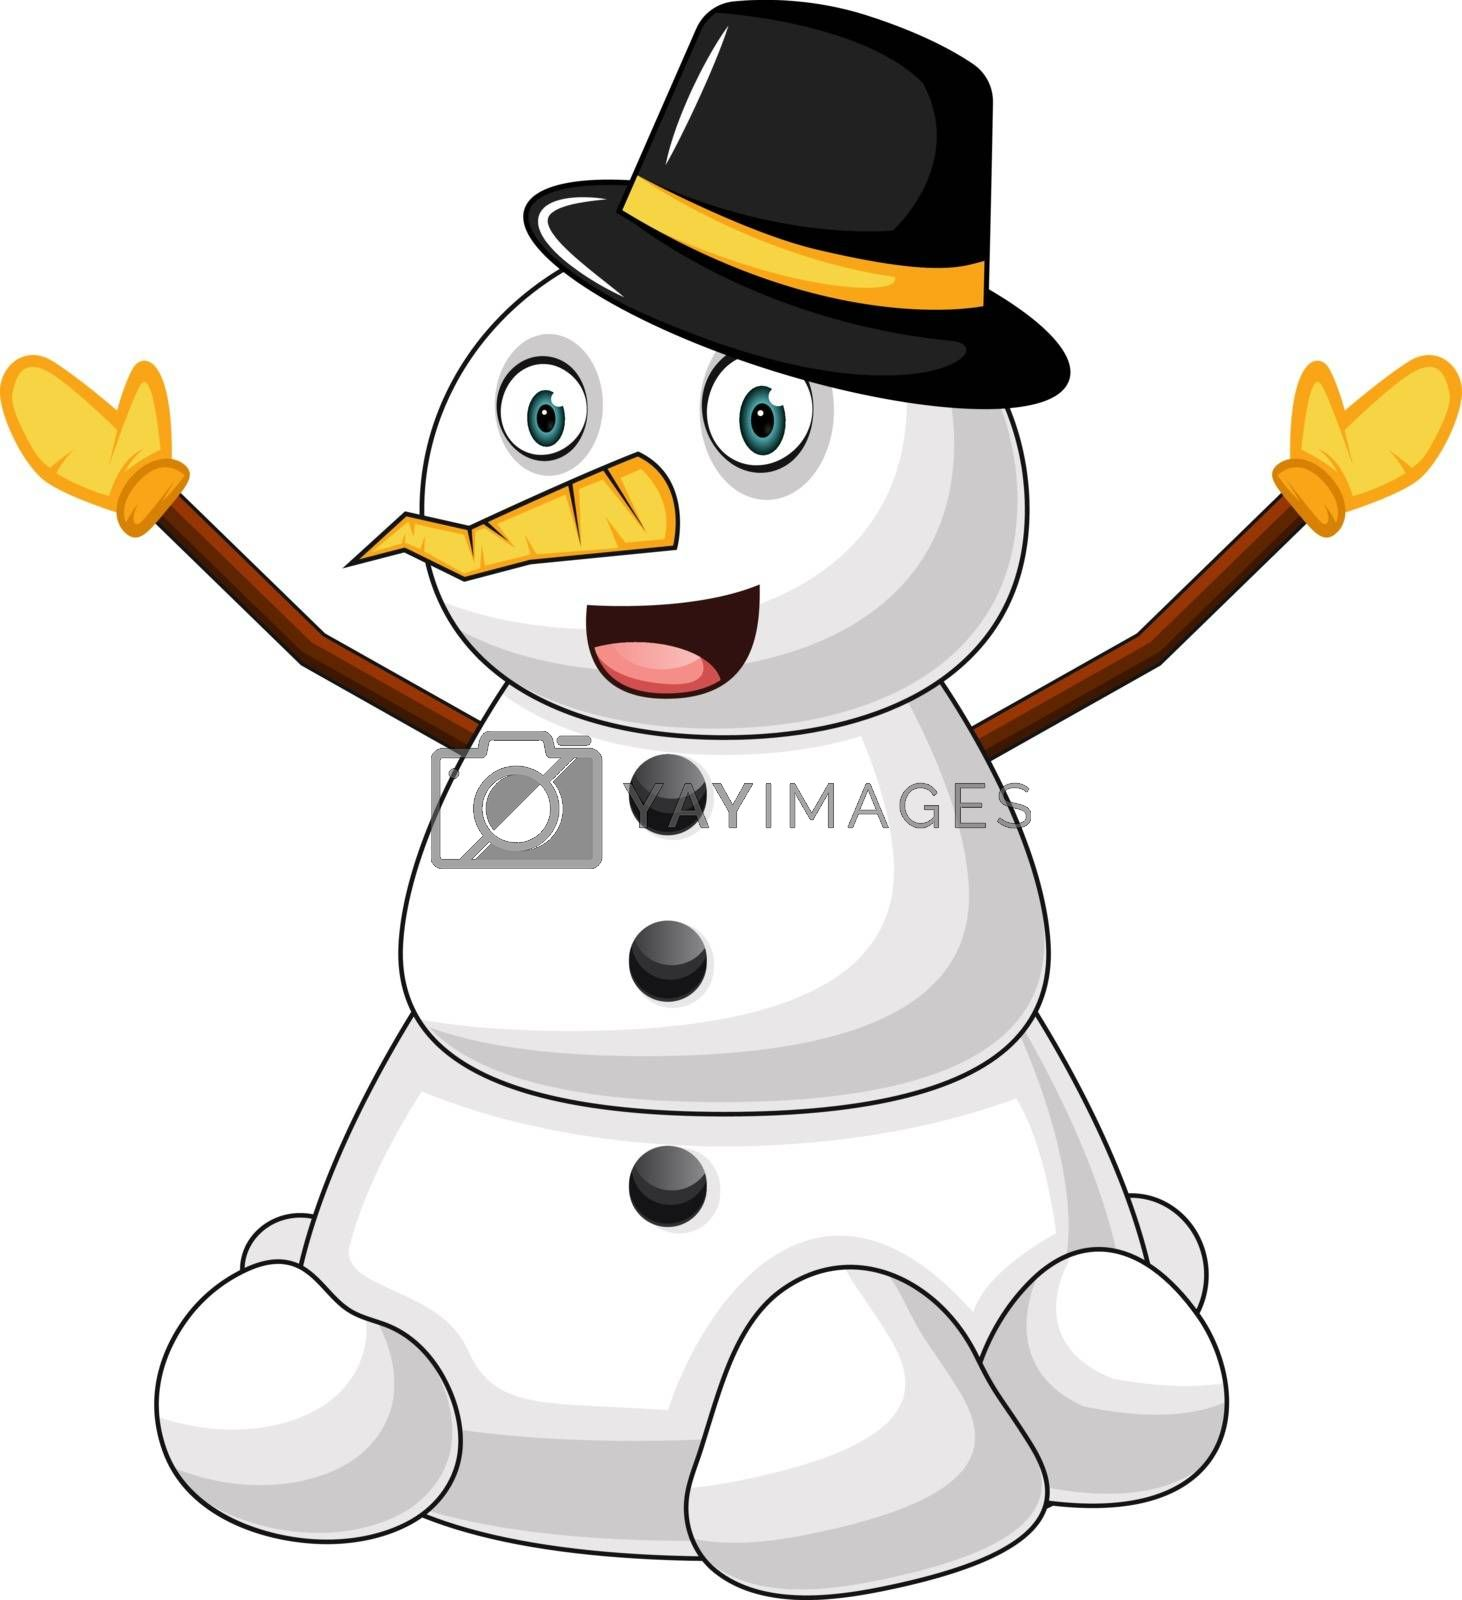 Royalty free image of Snowman with hat illustration vector on white background by Morphart